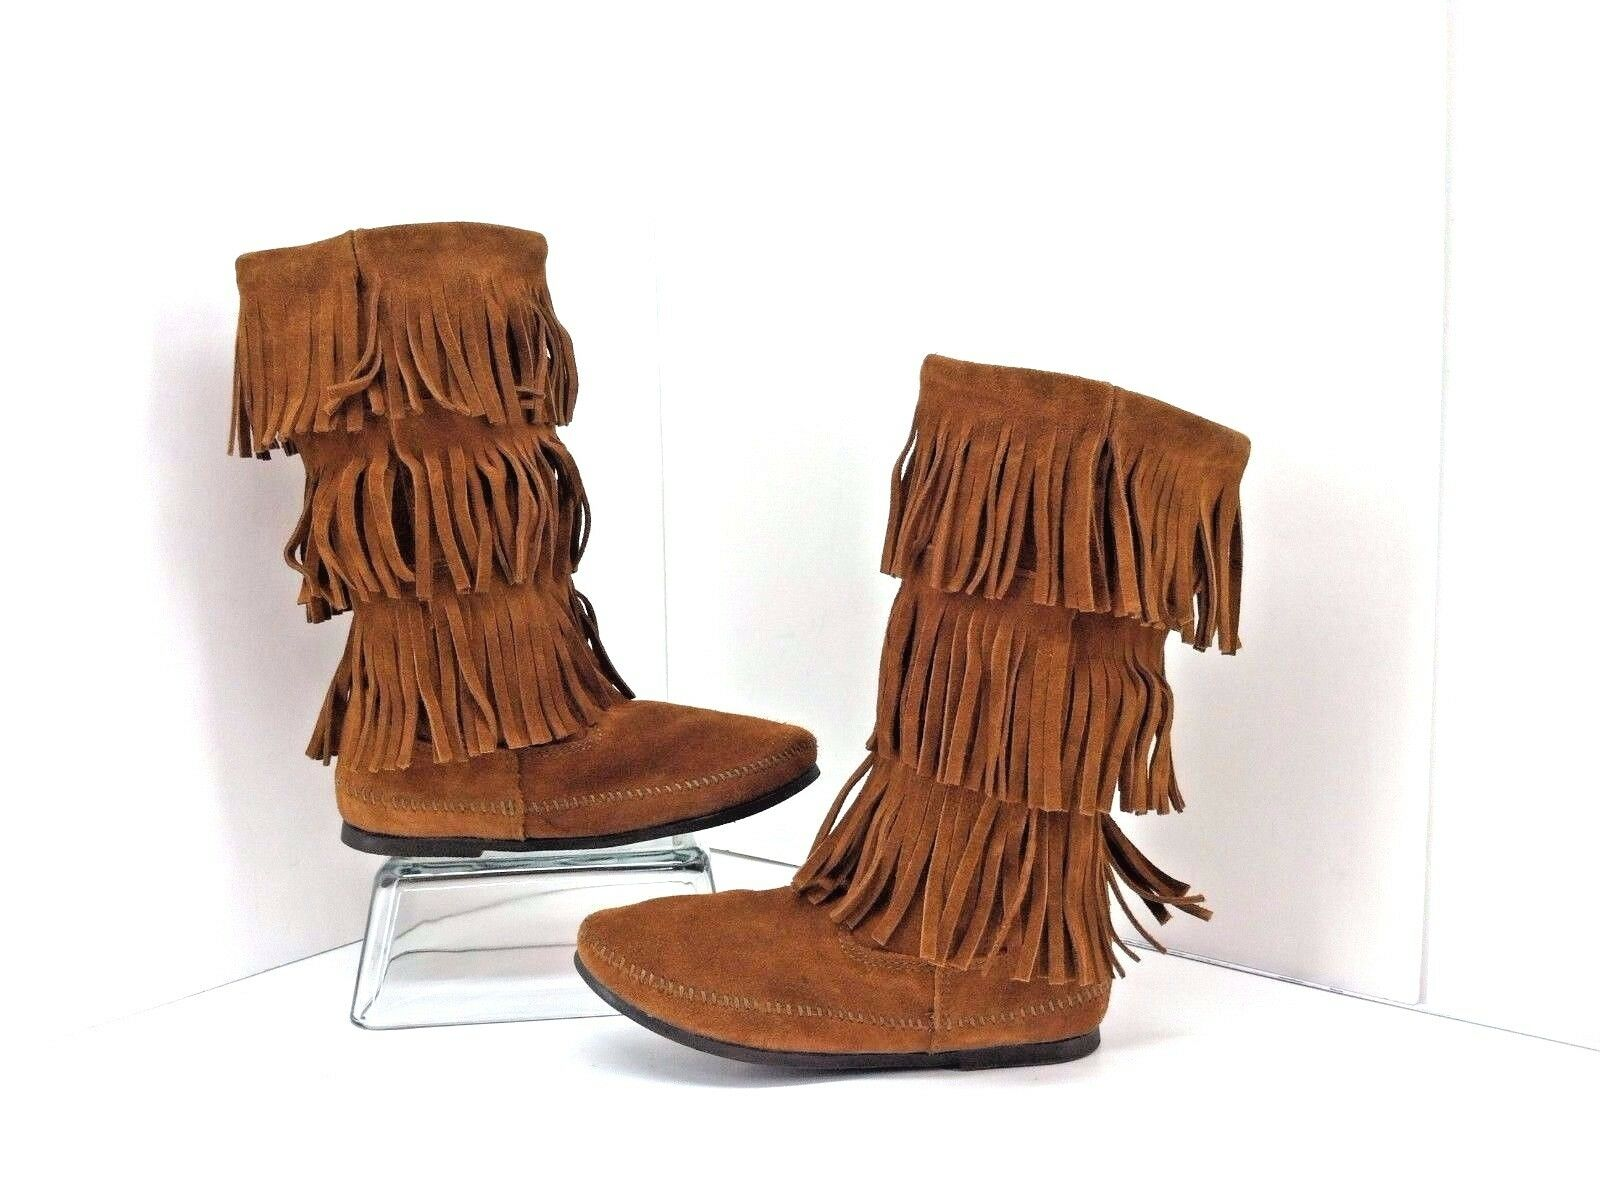 Minnetonka 3 Layer Fringe Brown Suede Moccasin Boots. Size 8 Style 1632